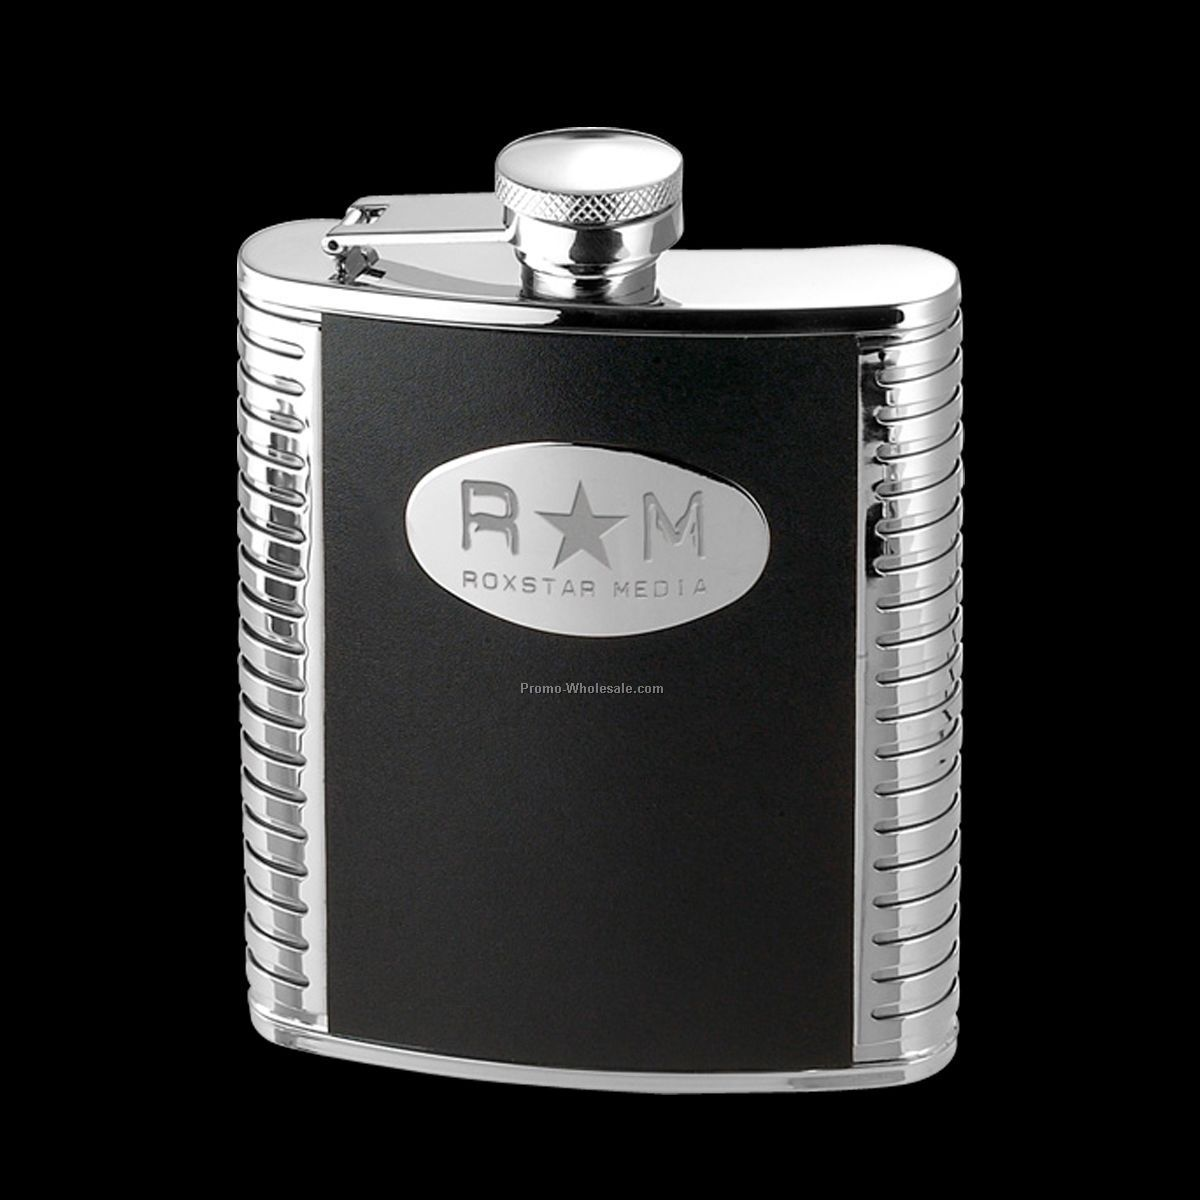 Aztec Hip Flask W/ Black Leather Accent